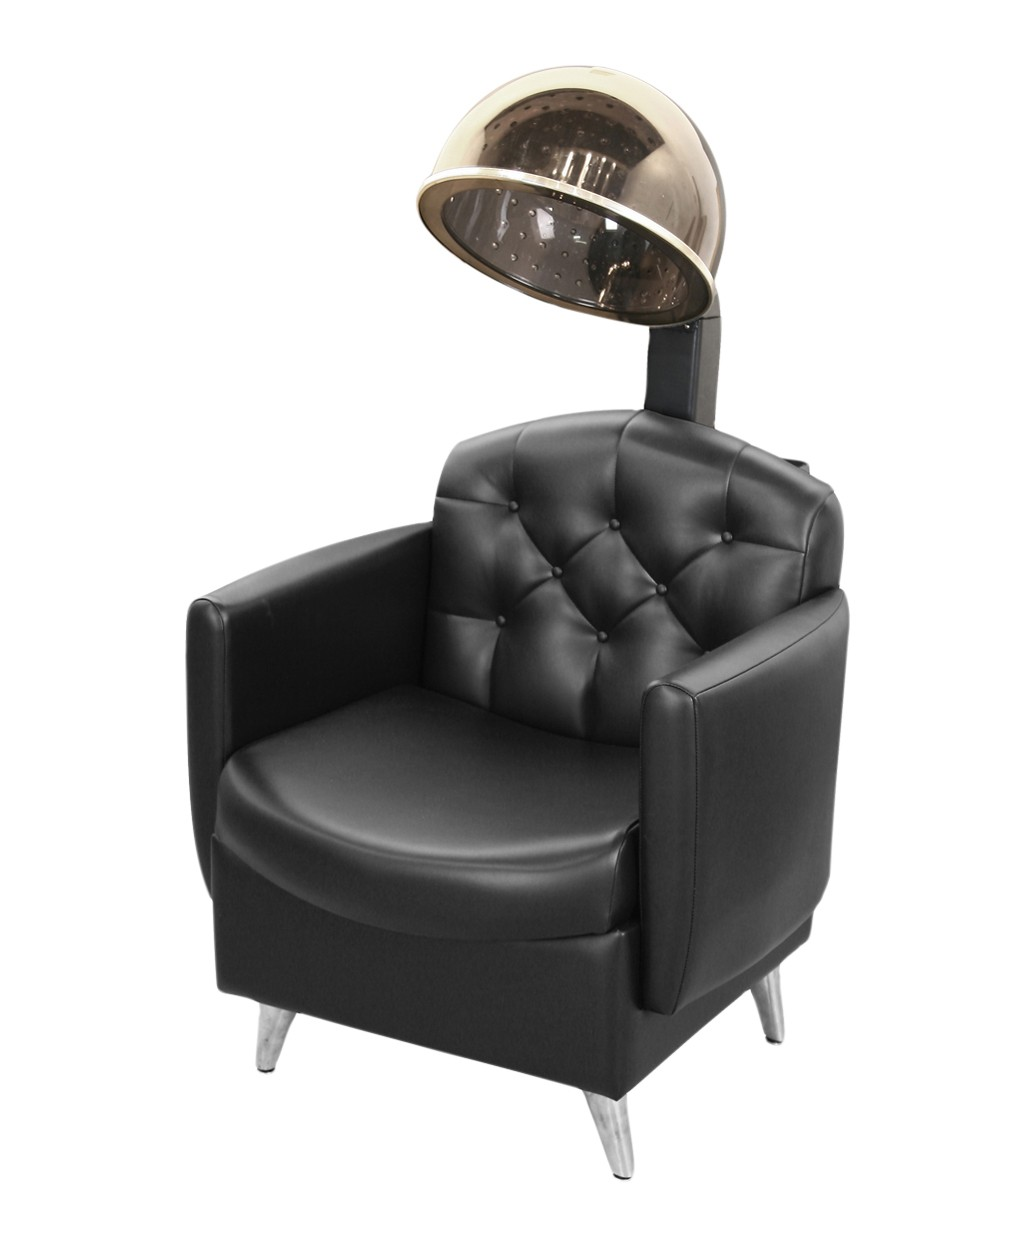 chair hair dryer chairs for gaming collins 7120 ashton